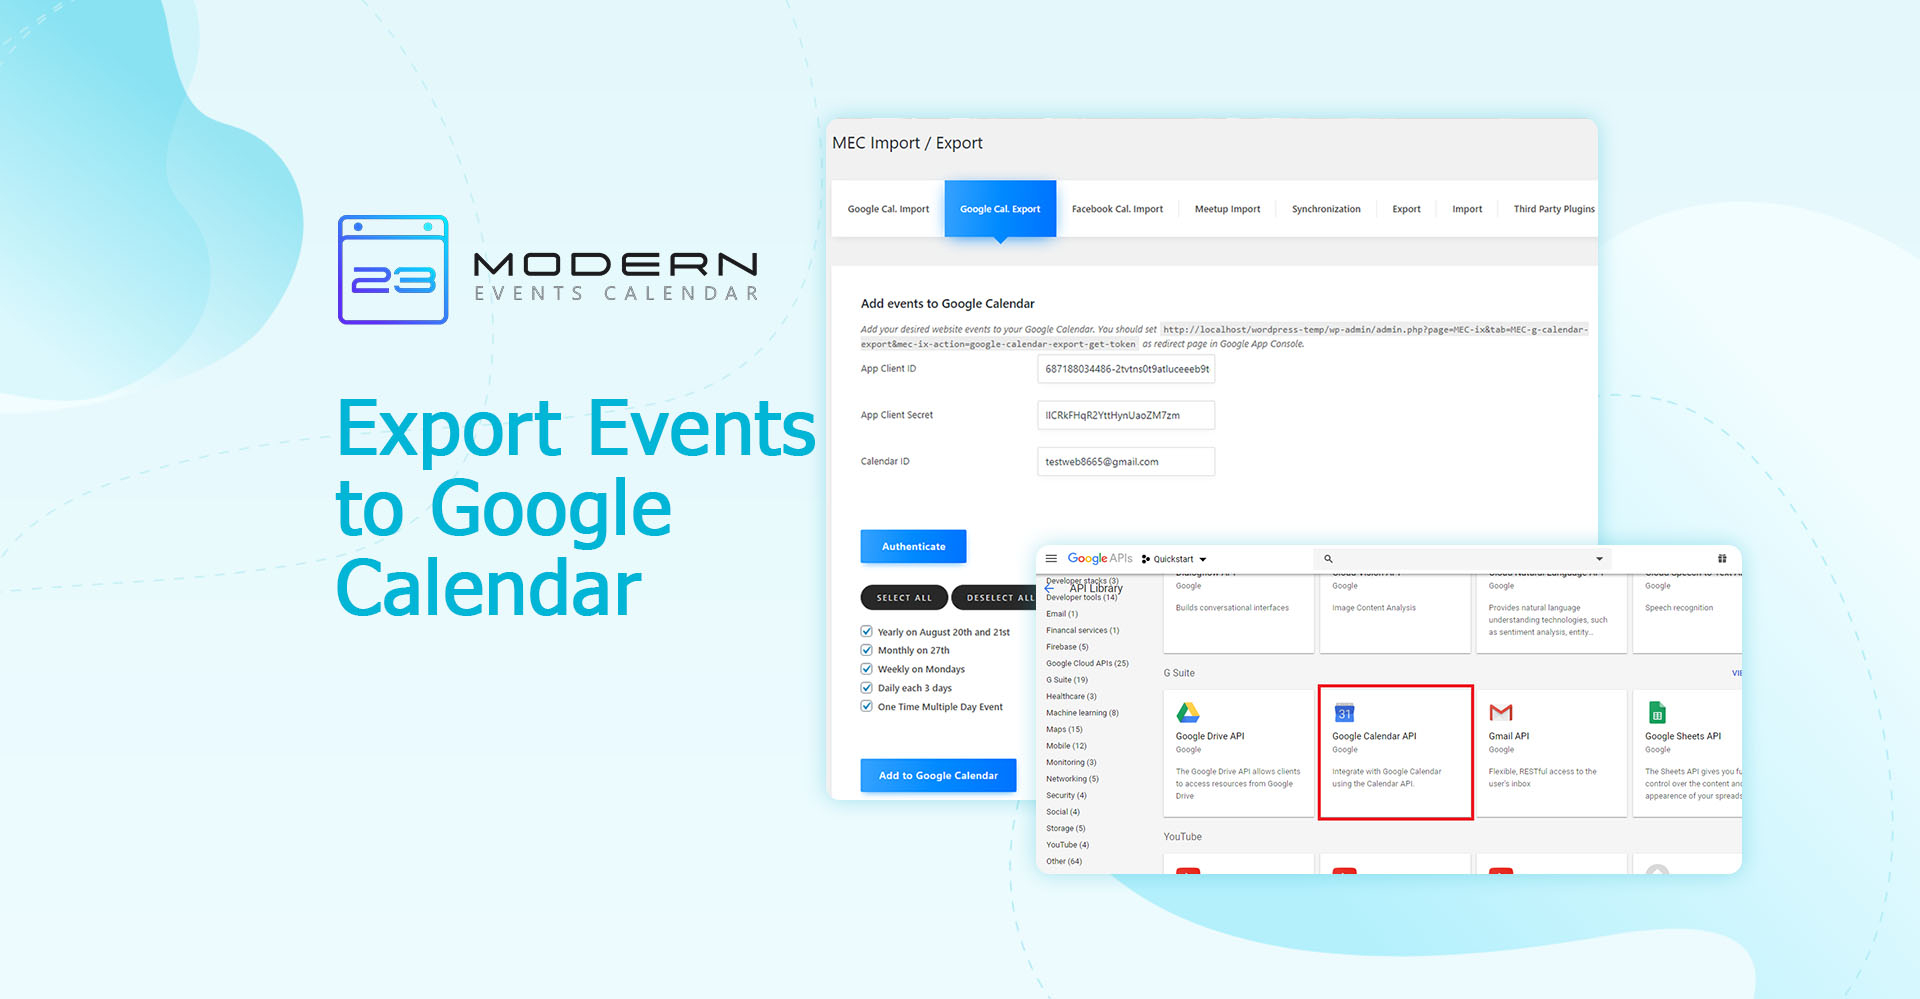 Export Events To Google Calendar  Modern Events Calendar intended for How To Export Google Calendar To Excel